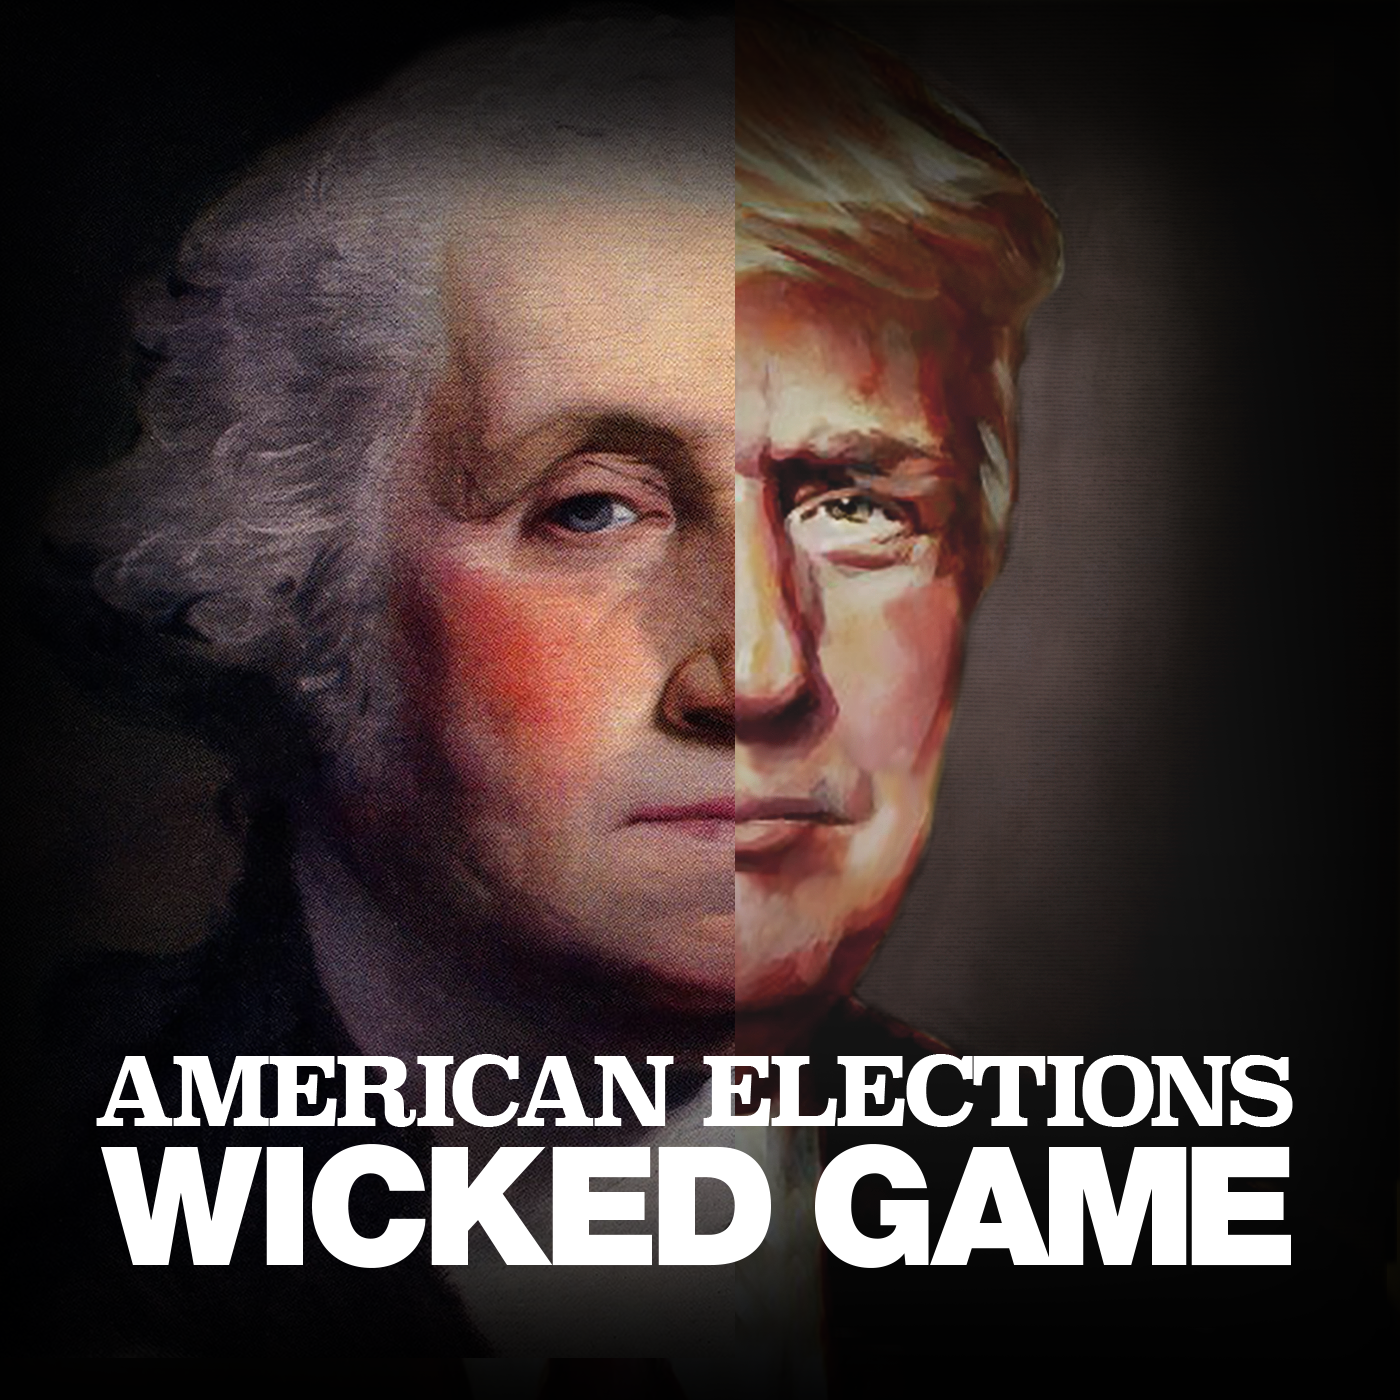 American Elections Key Art